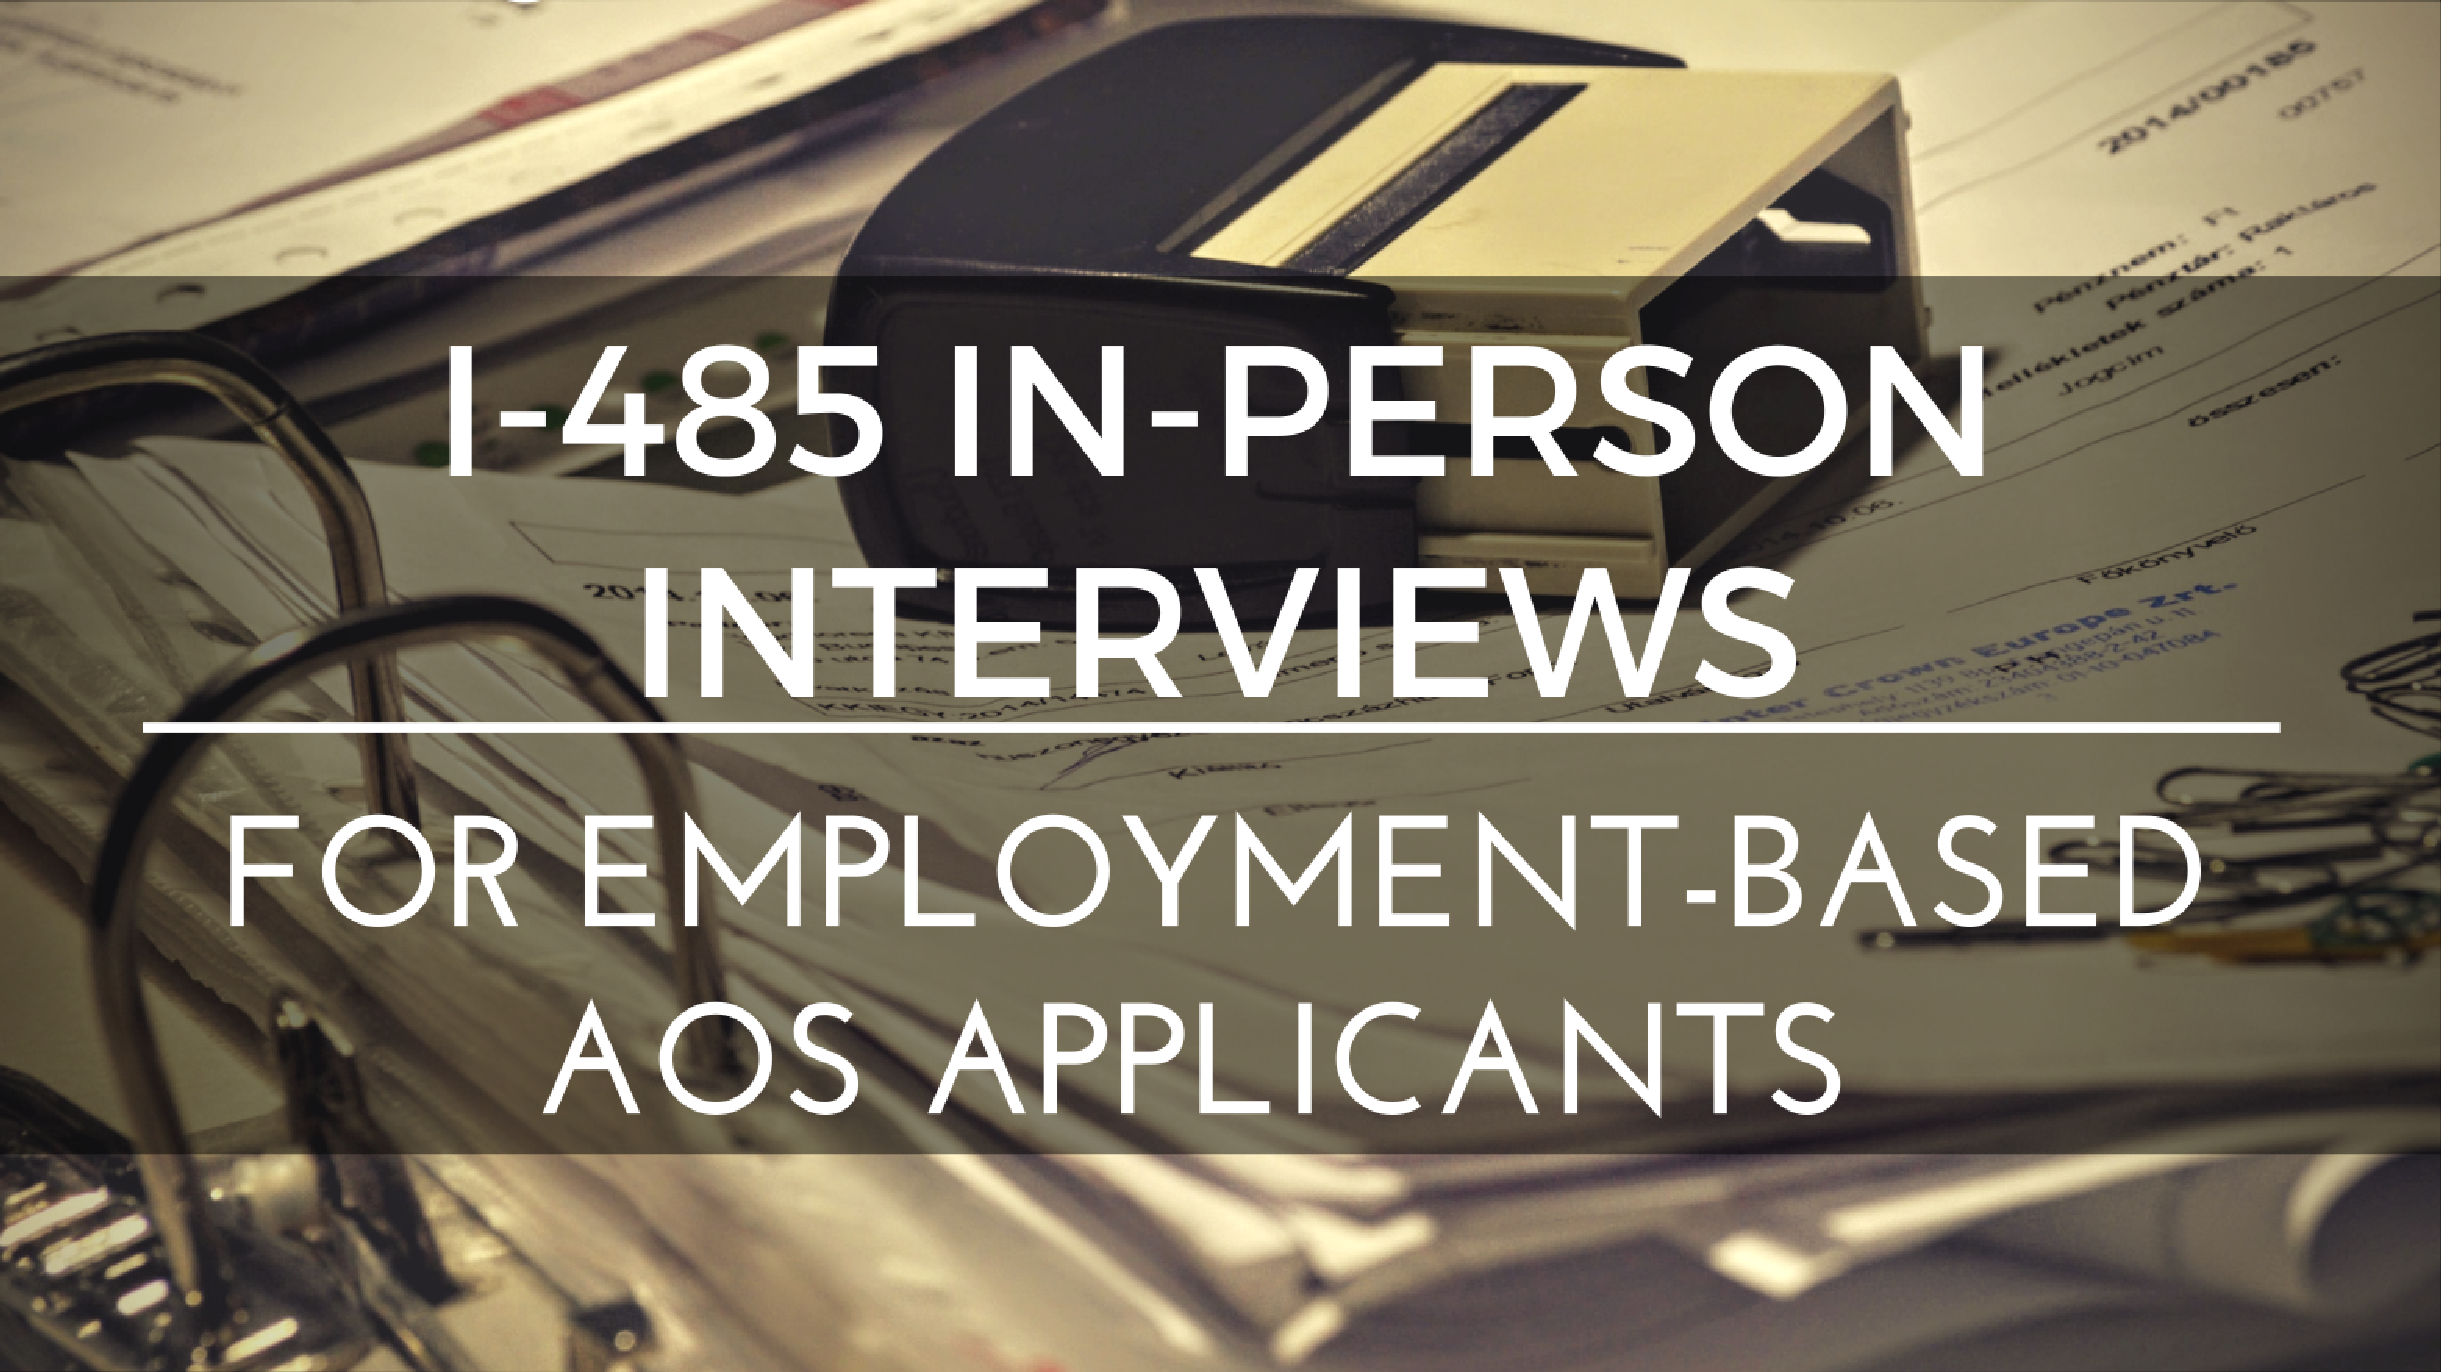 Uscis to start requiring in person interviews for employment i 485 view larger image falaconquin